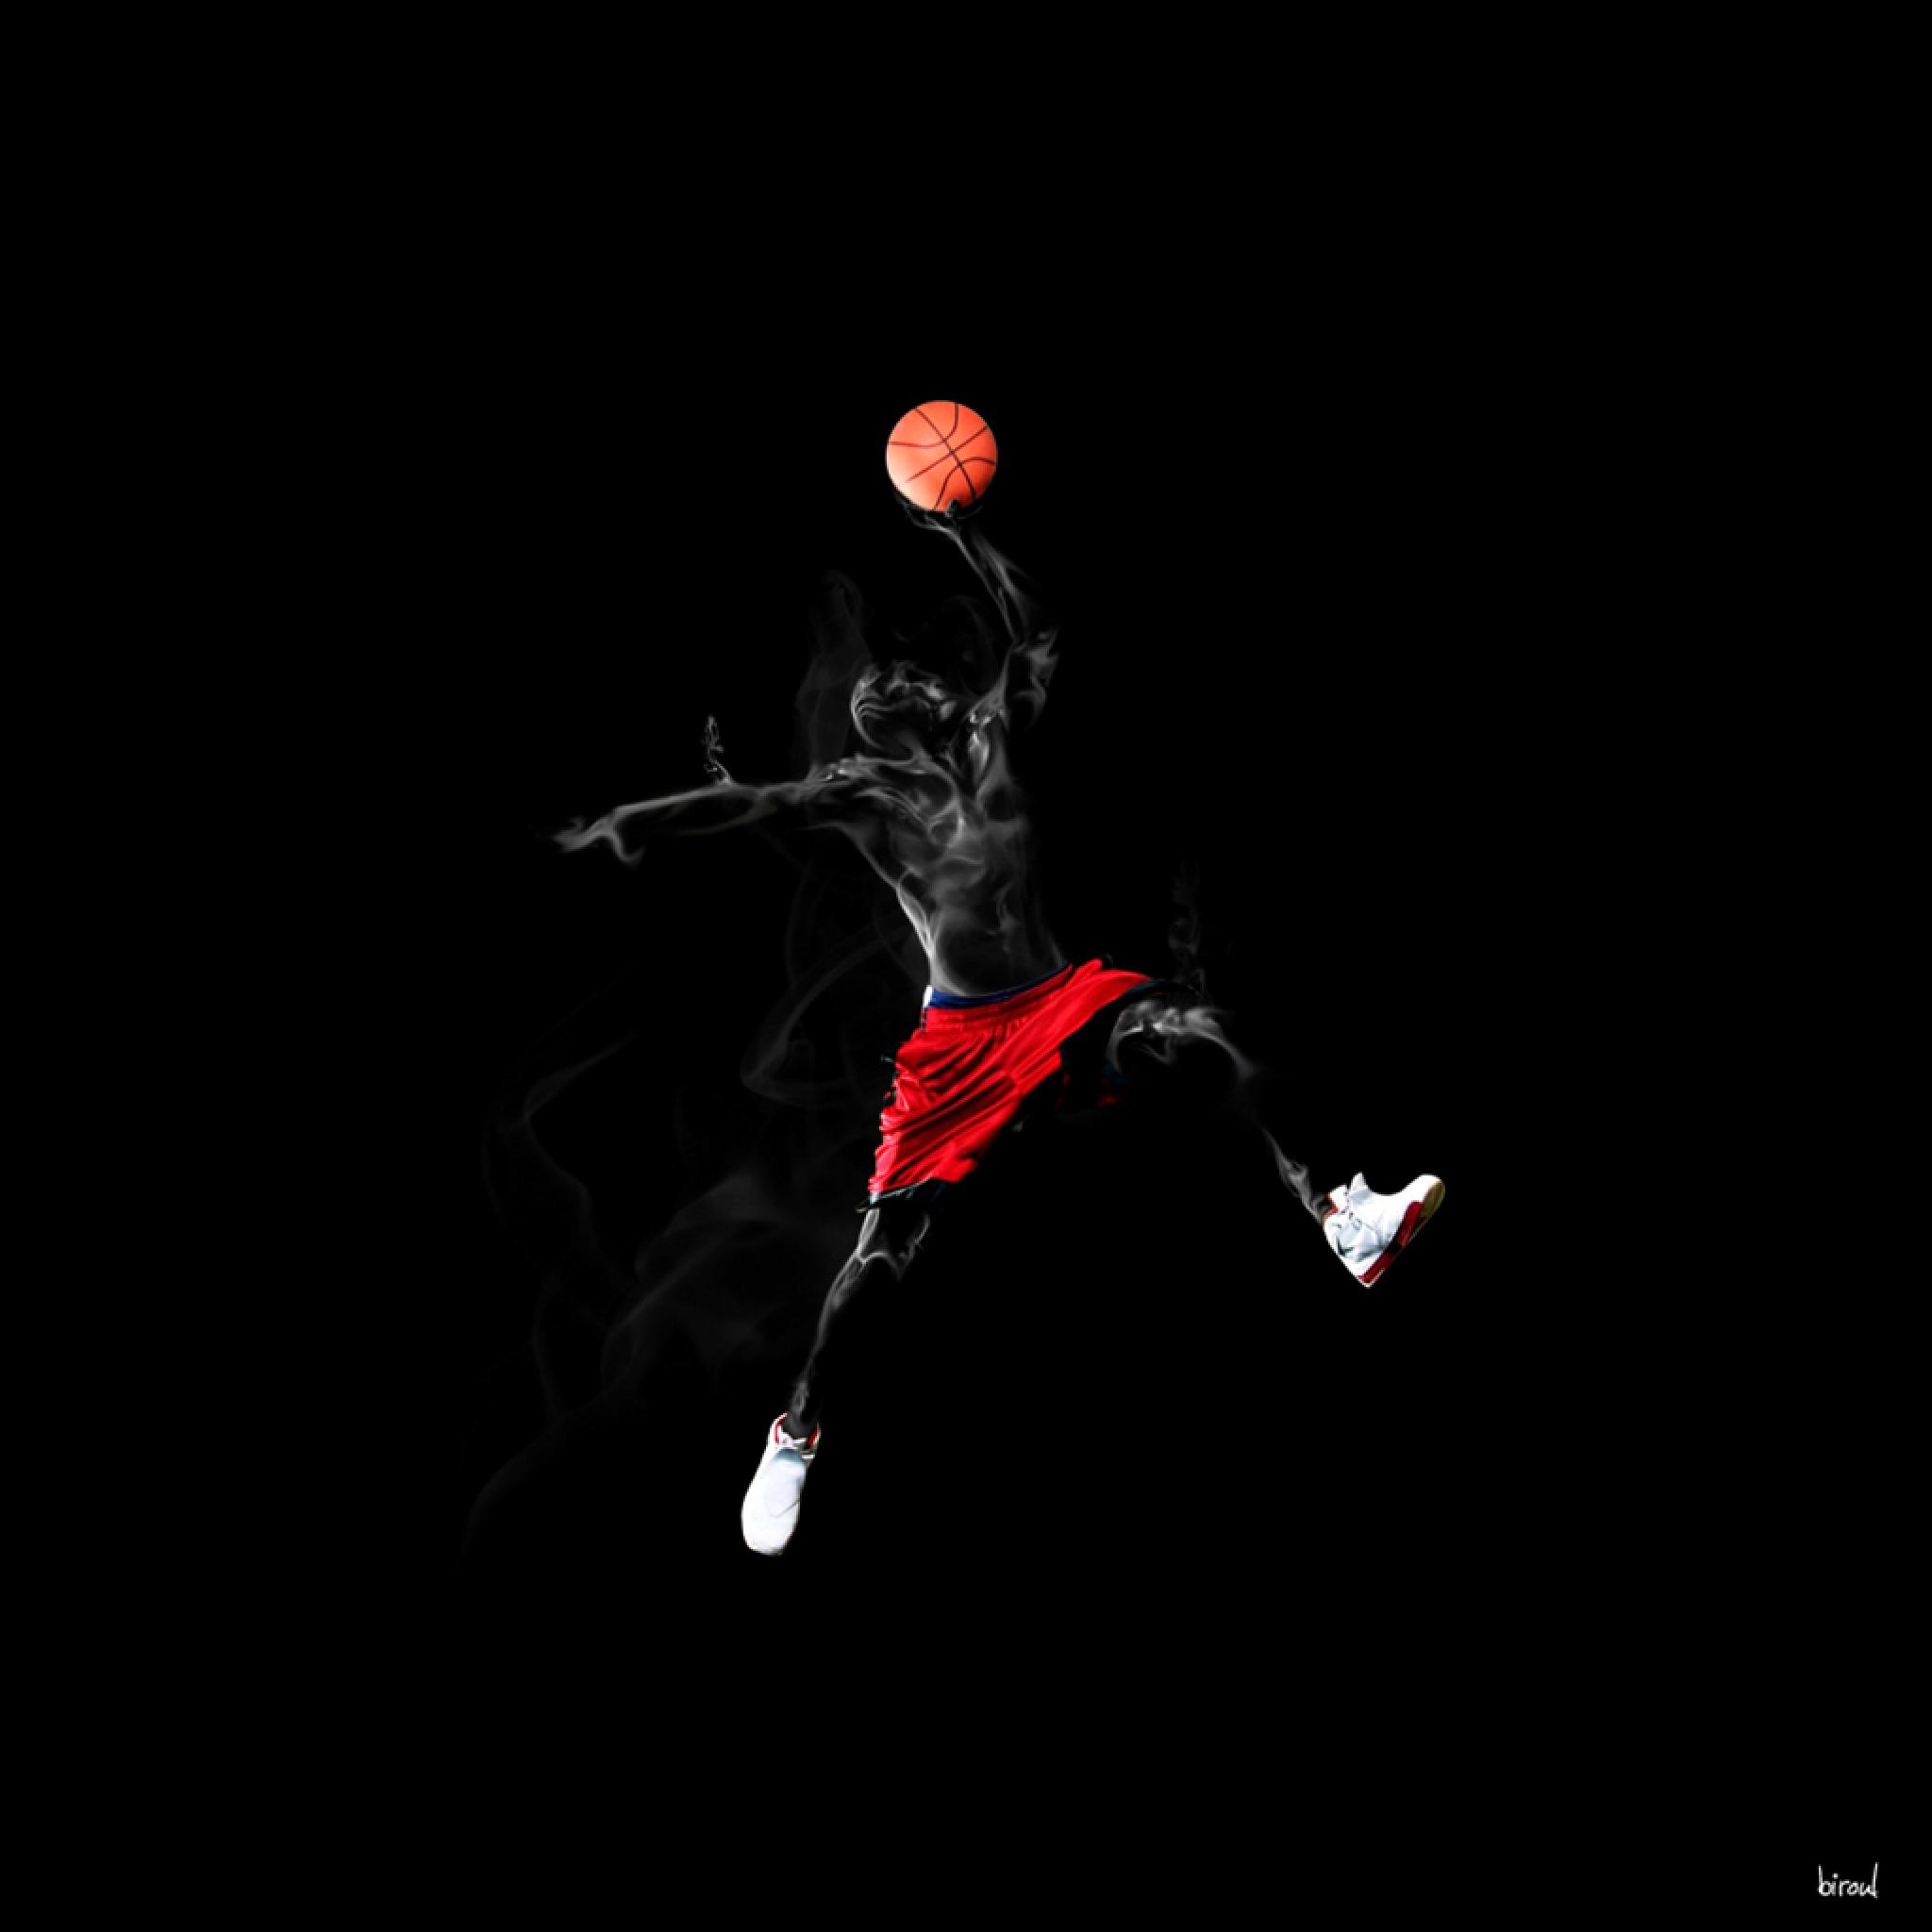 FunMozar Best Basketball Wallpapers 2048x2048